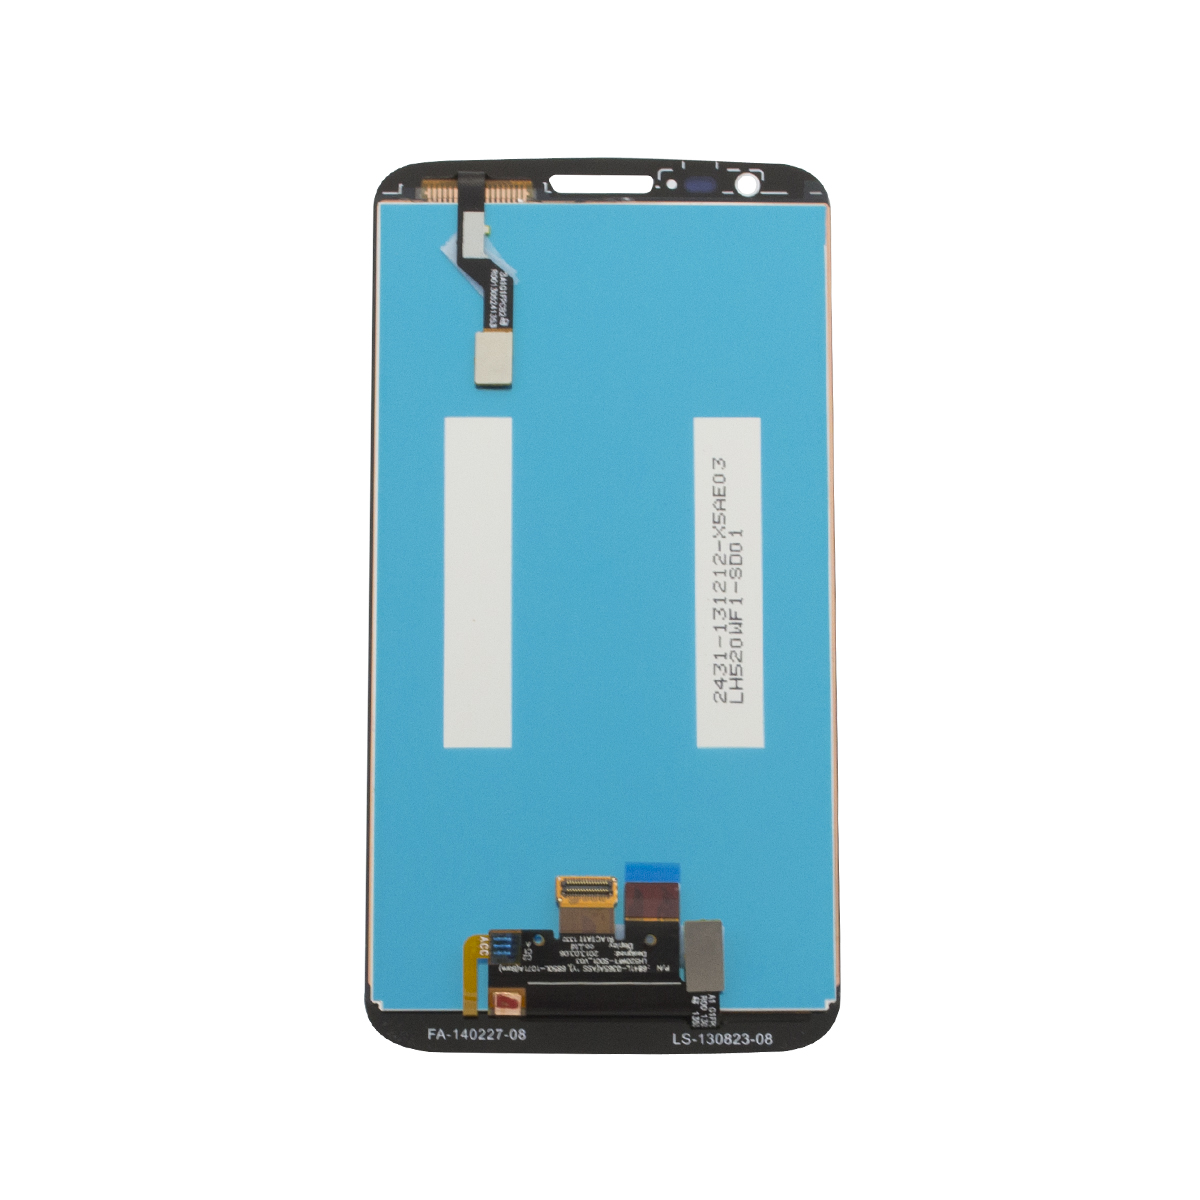 Lg G2 D802 D805 White Lcd Touch Screen Digitizer 32gb Free Flip Cover